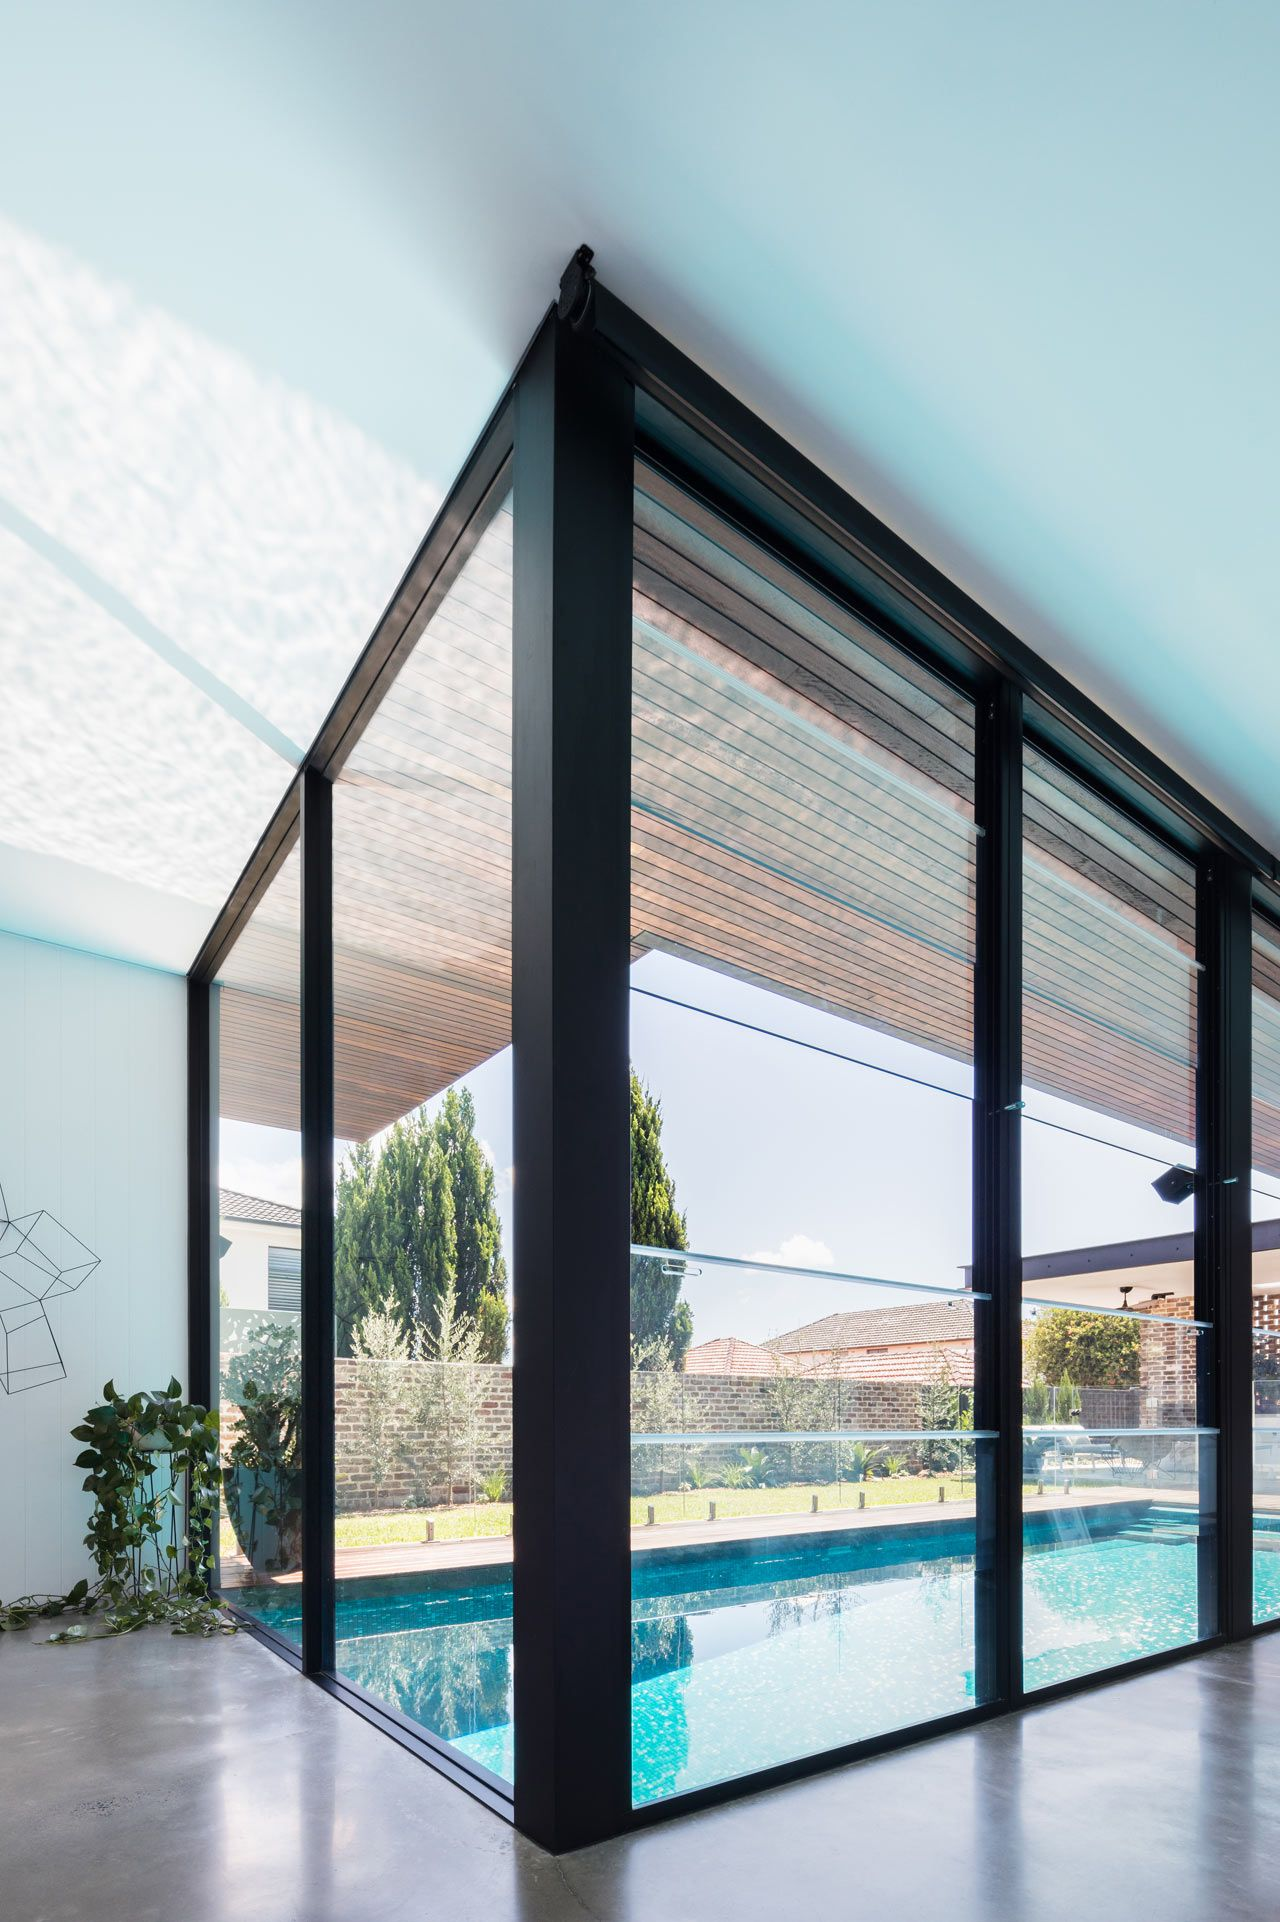 Preston House Is a Light-Filled, Indoor/Outdoor Residence ...